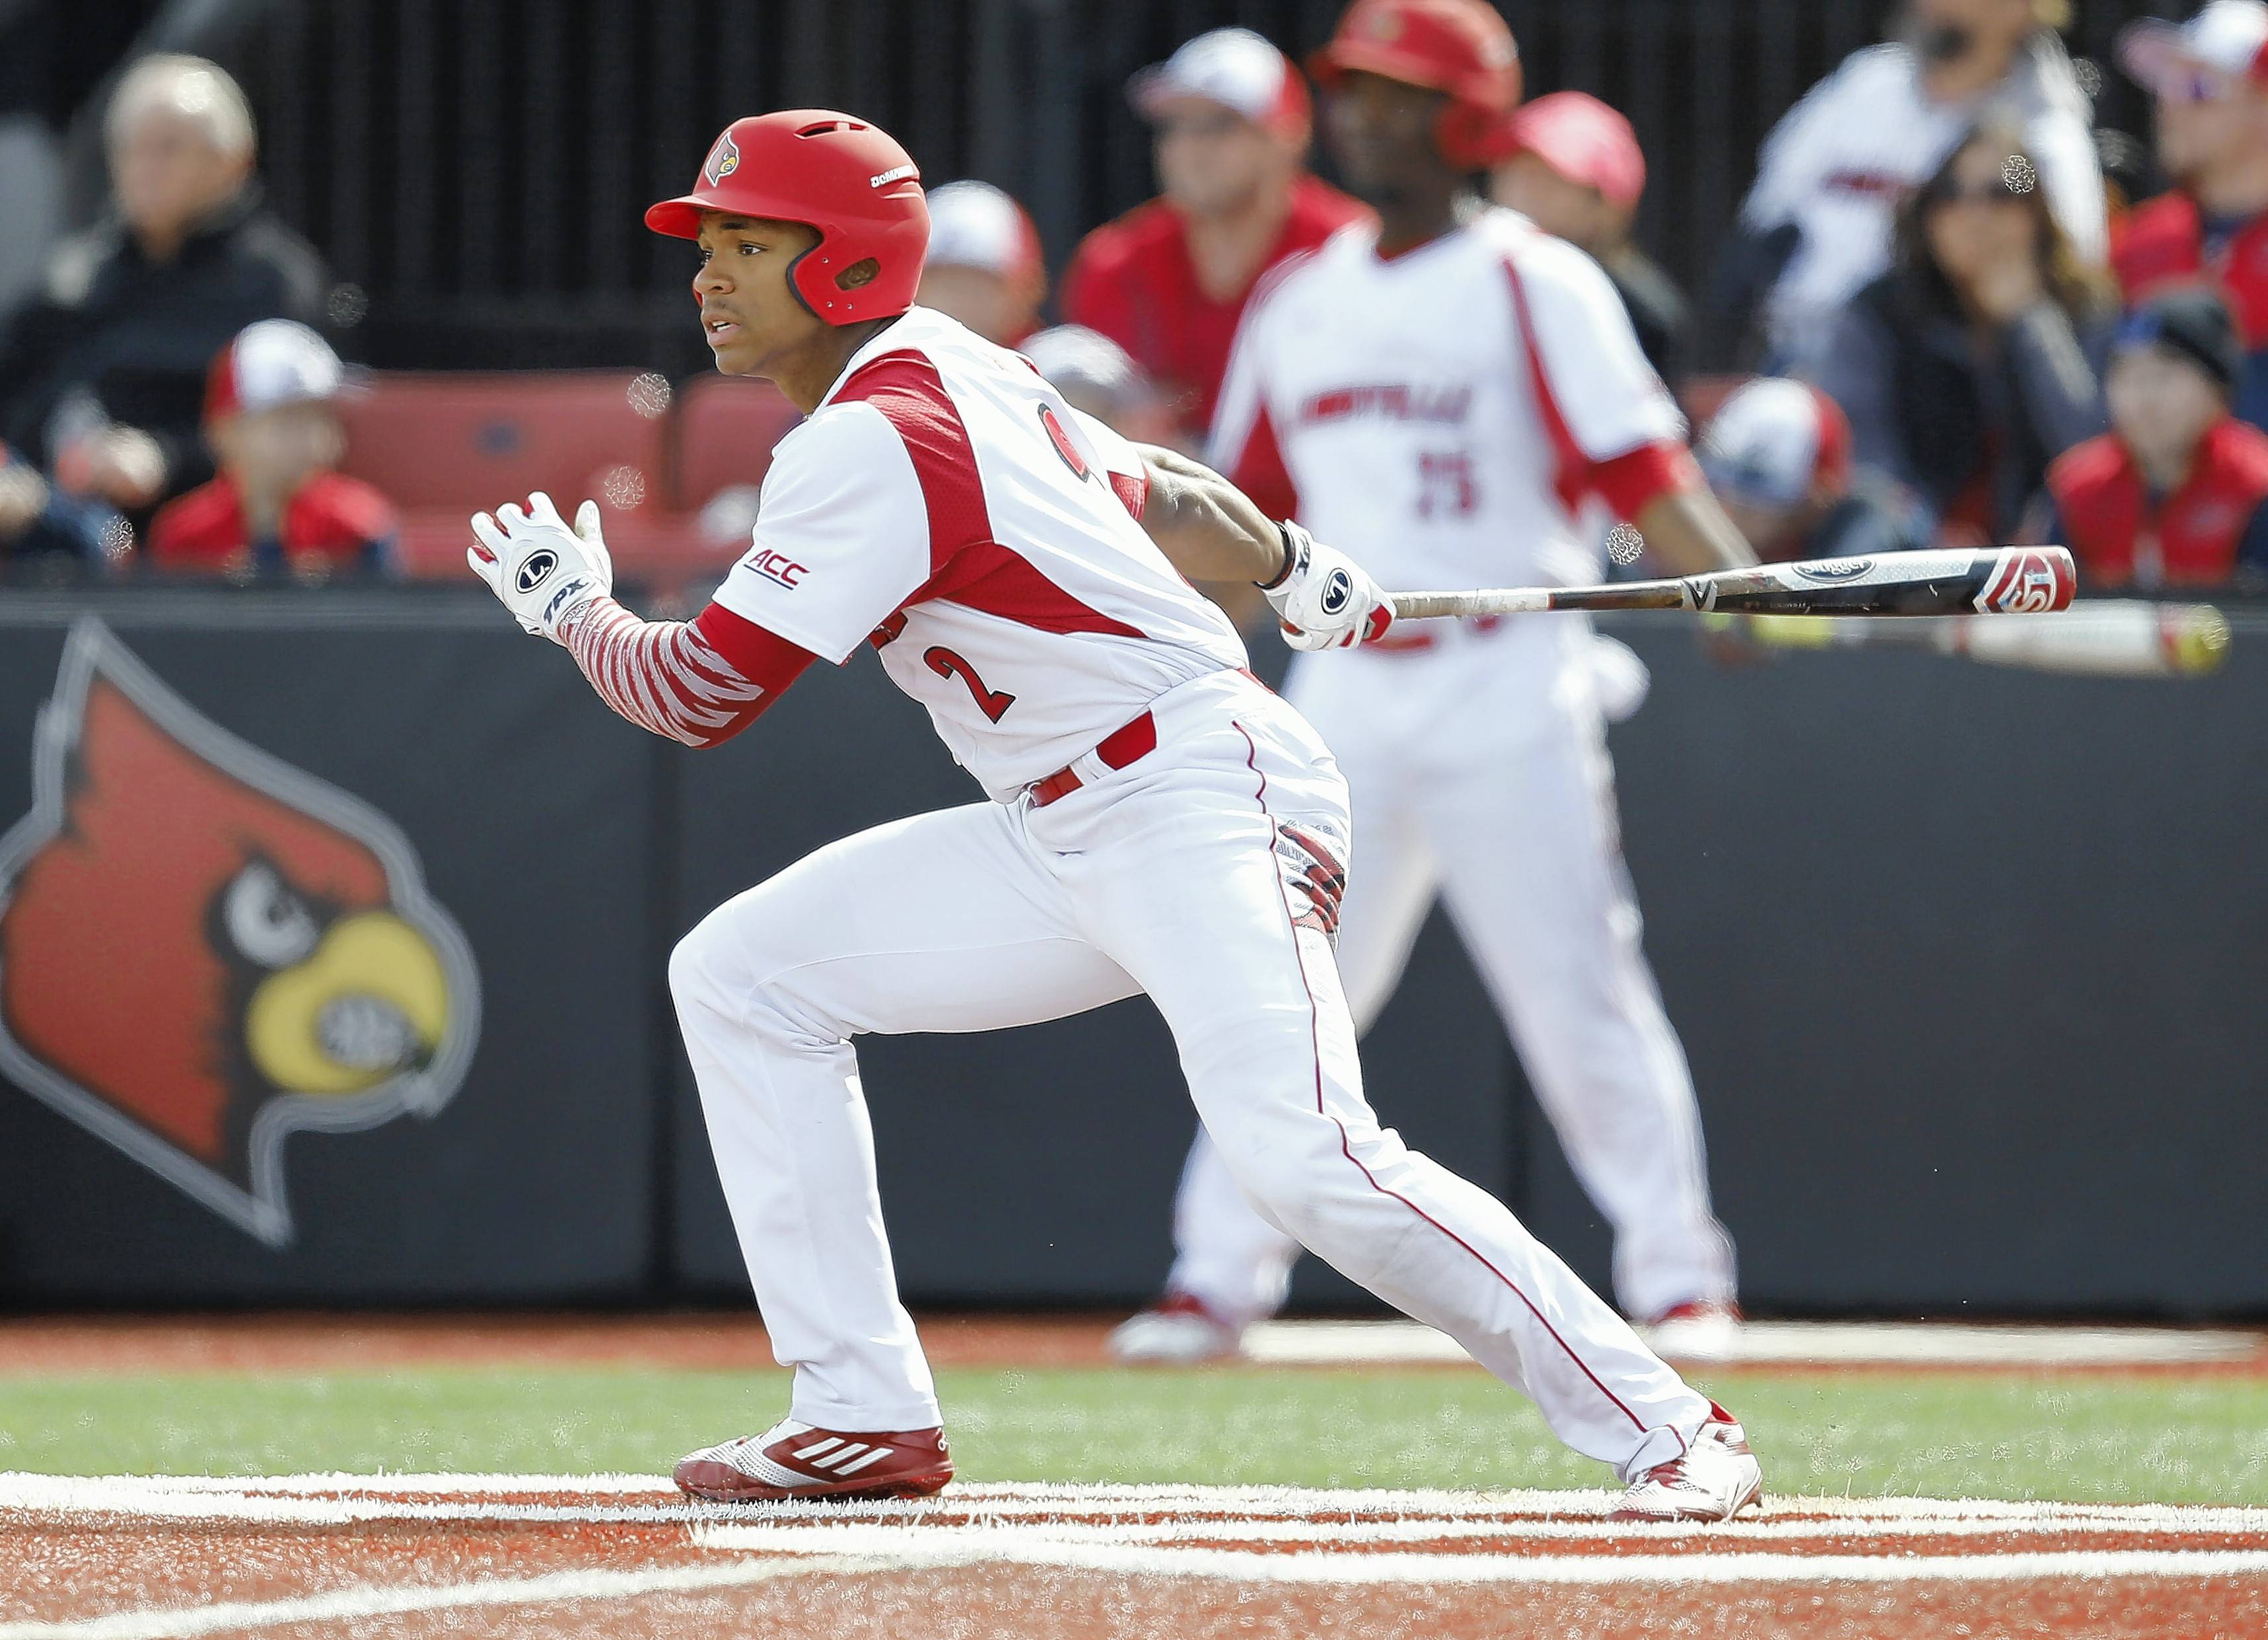 Corey Ray, an outfielder from Chicago with the Louisville Cardinals, is expected to go in the first round of next month's MLB Draft.